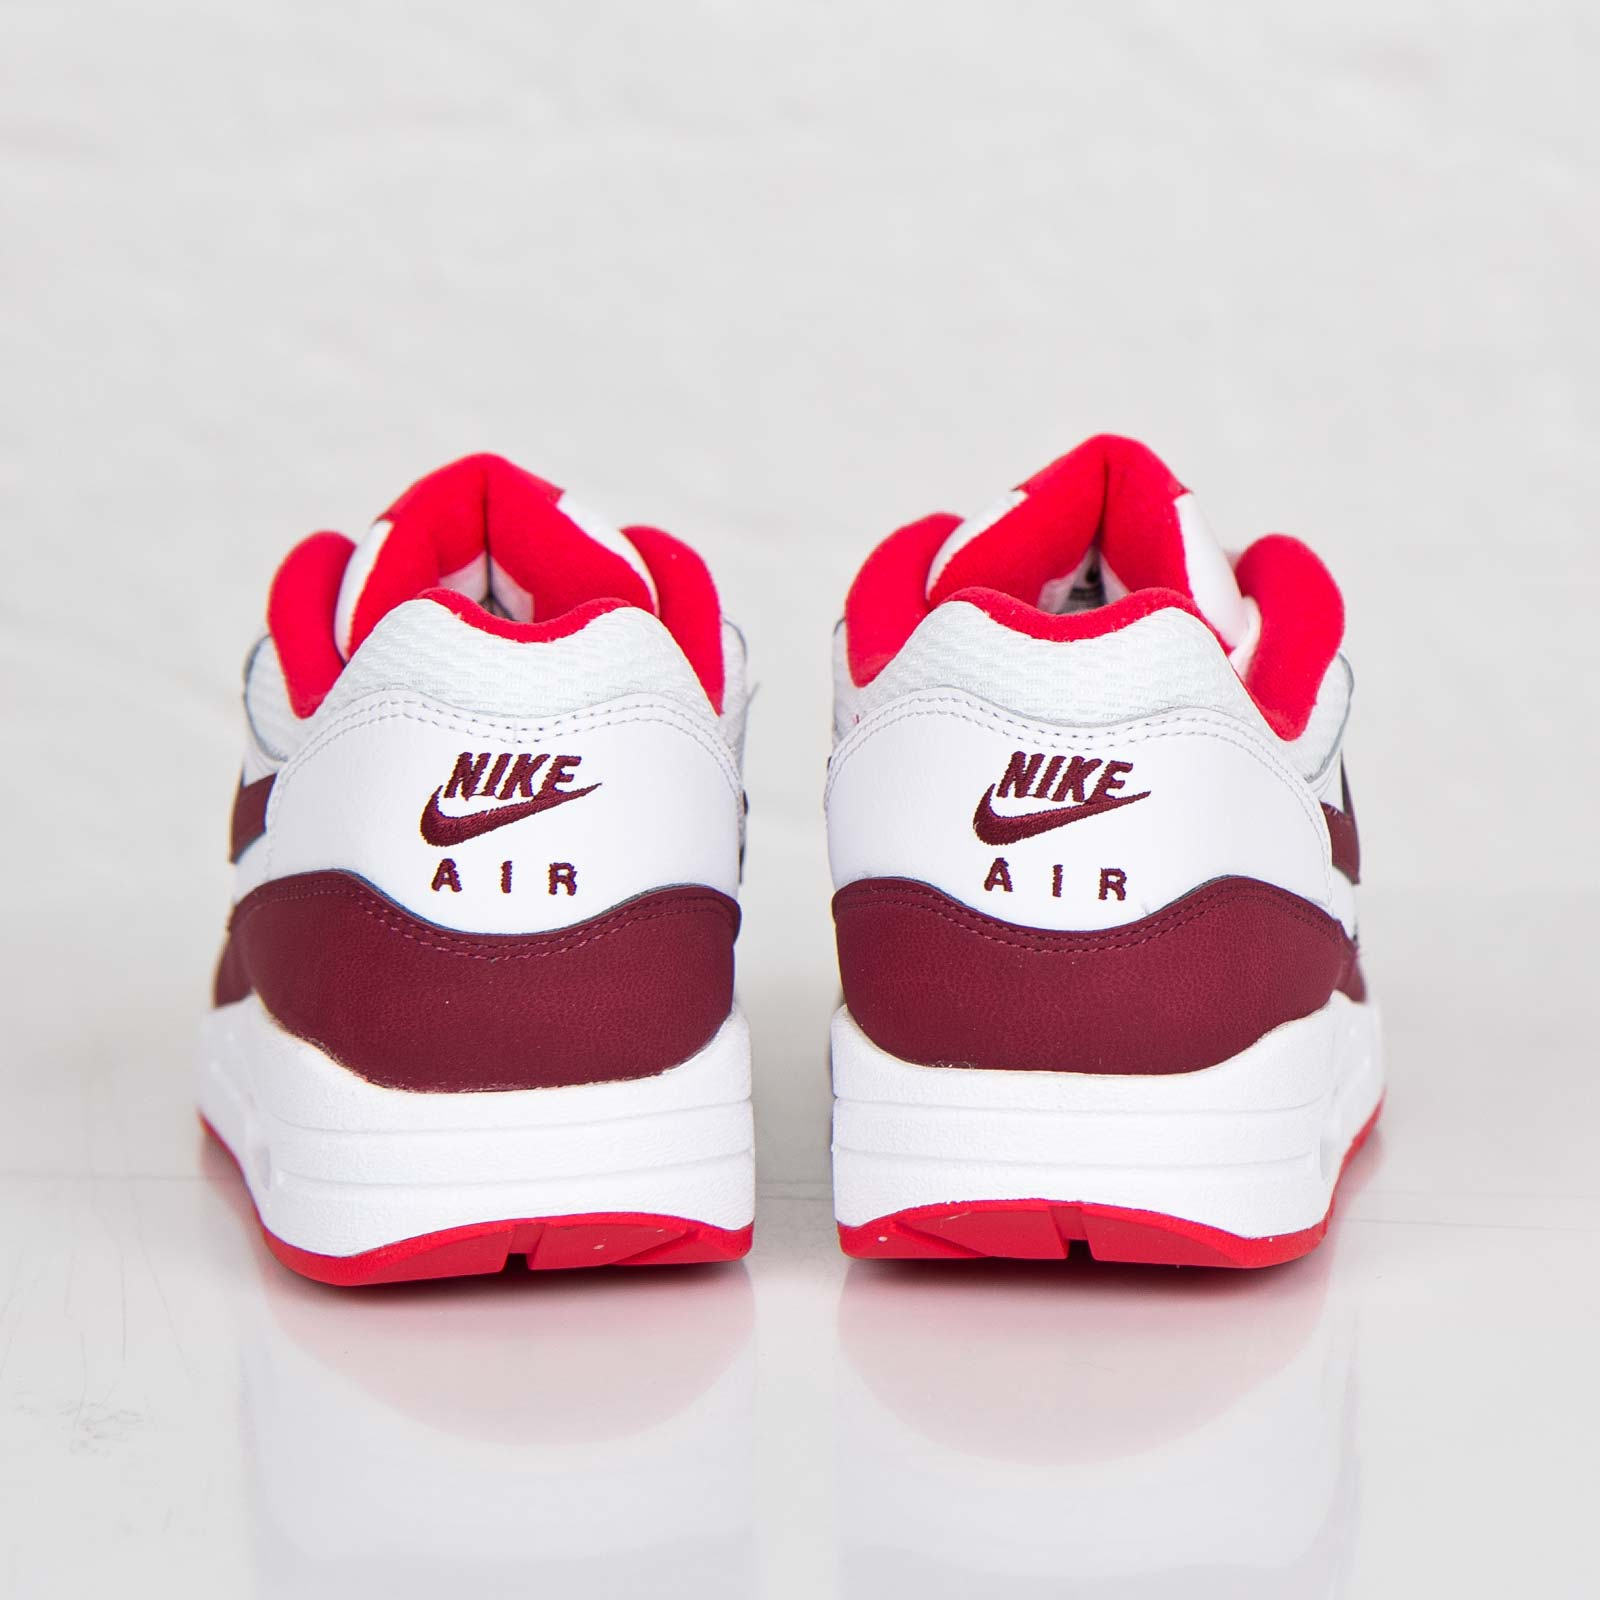 size 40 aabac a4a2e Nike Wmns Air Max 1 Essential - 599820-110 - Sneakersnstuff   sneakers    streetwear online since 1999